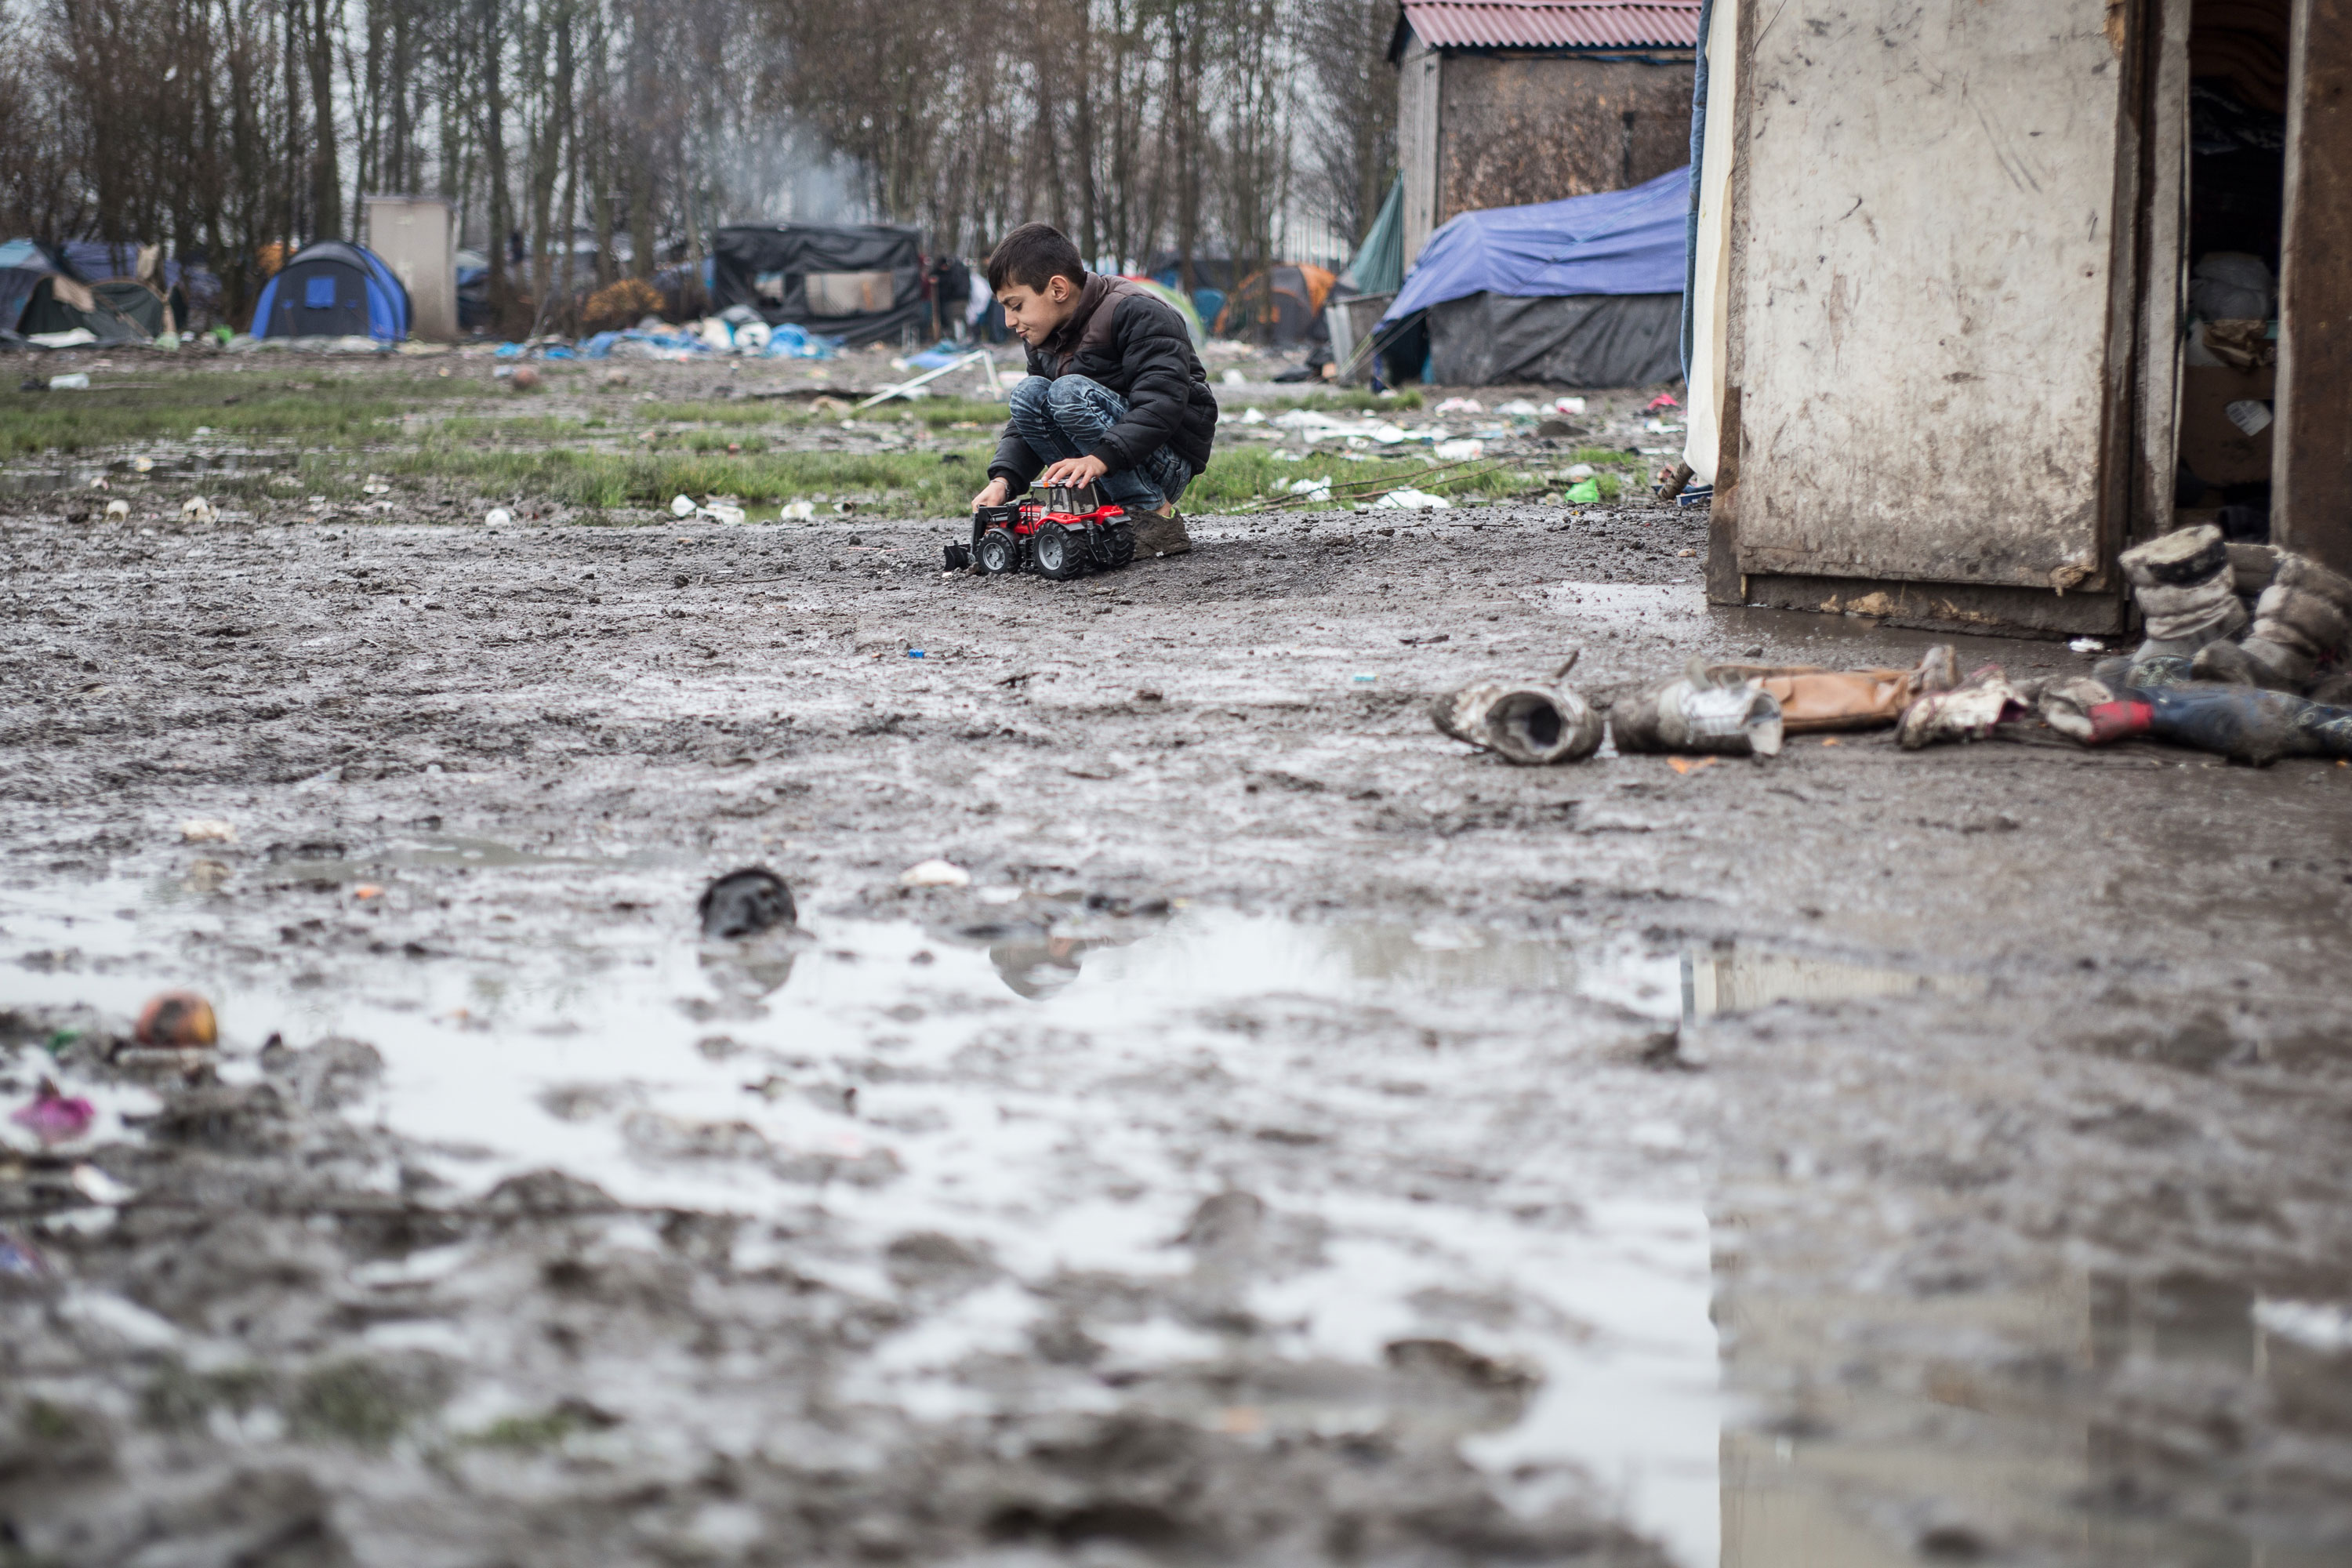 Single men comprise Dunkirk's population mostly, but there are approximately 200 children at the camp now. The children are especially susceptible to respiratory illnesses and diarrhoea caused by the cold and poor sanitary conditions. [Kelly Lynn Lunde/Al Jazeera]